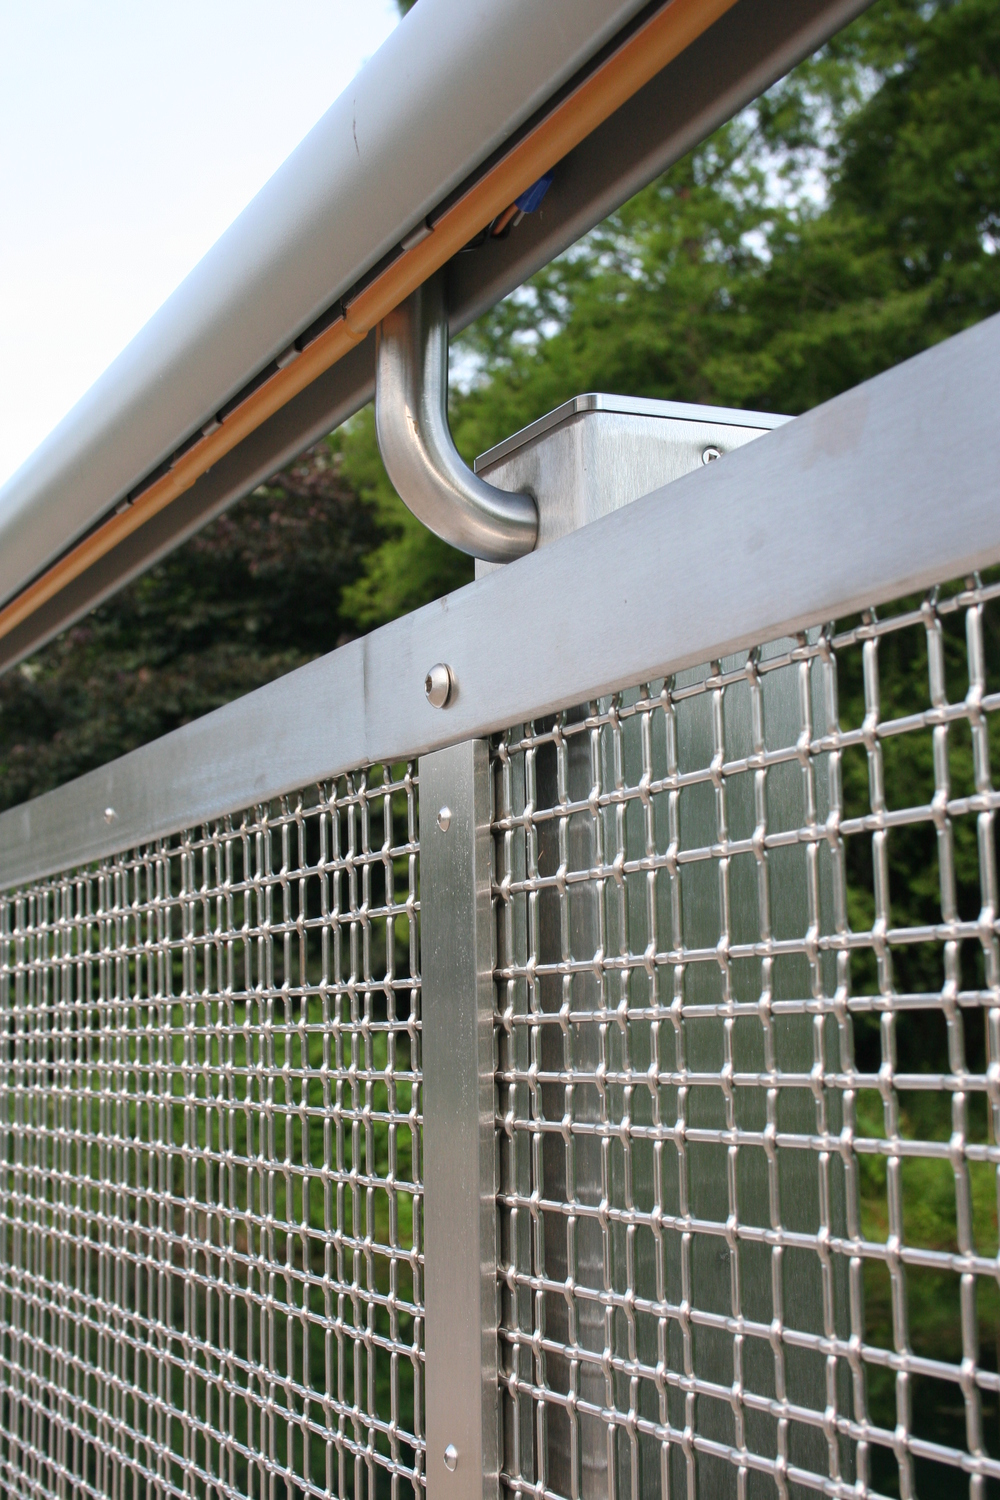 Our extrusion allowed for a custom LED light system to be integrated into the underside of the guard rail.